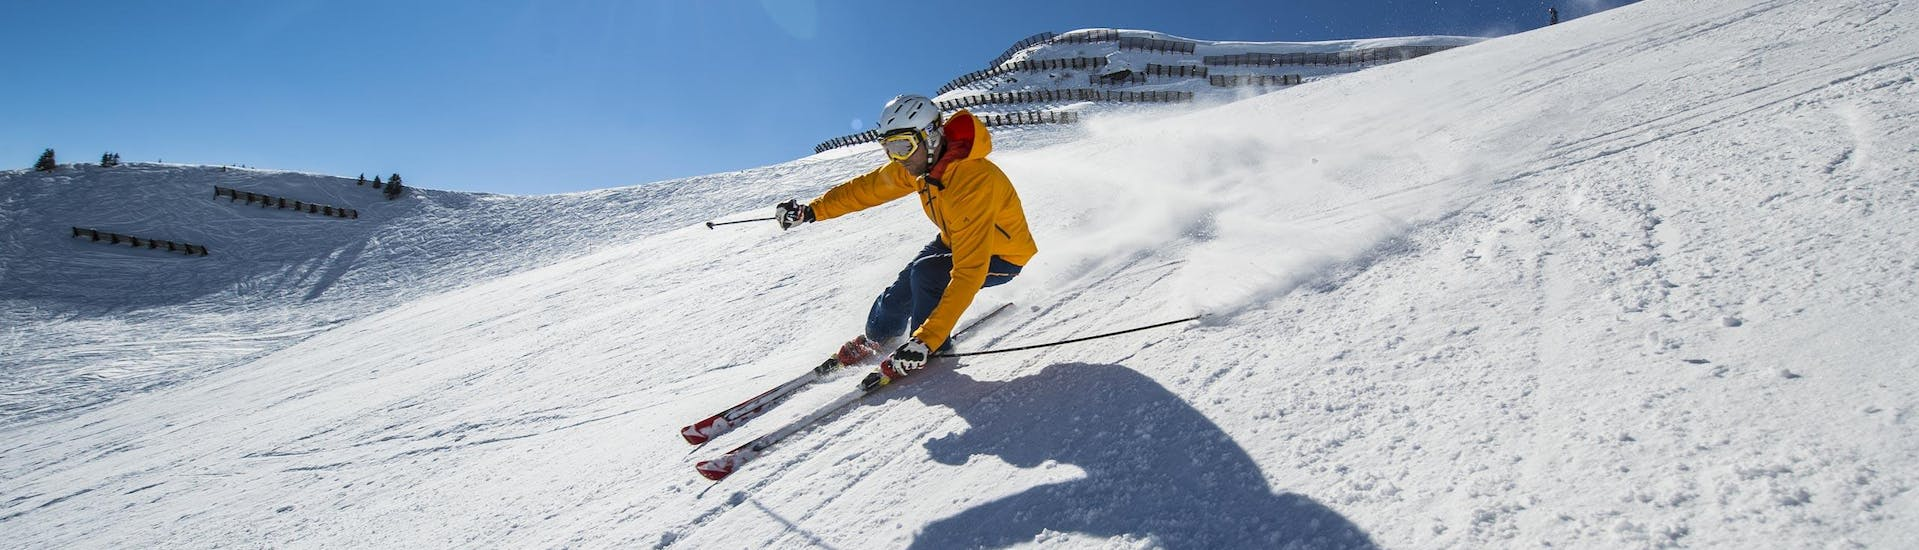 Adult Ski Lessons for Advanced Skiers - STEPS Programme: A skier is skiing down a sunny ski slope while participating in an activity offered by ESKIMOS Ski & Snowboard School  Saas-Fee.